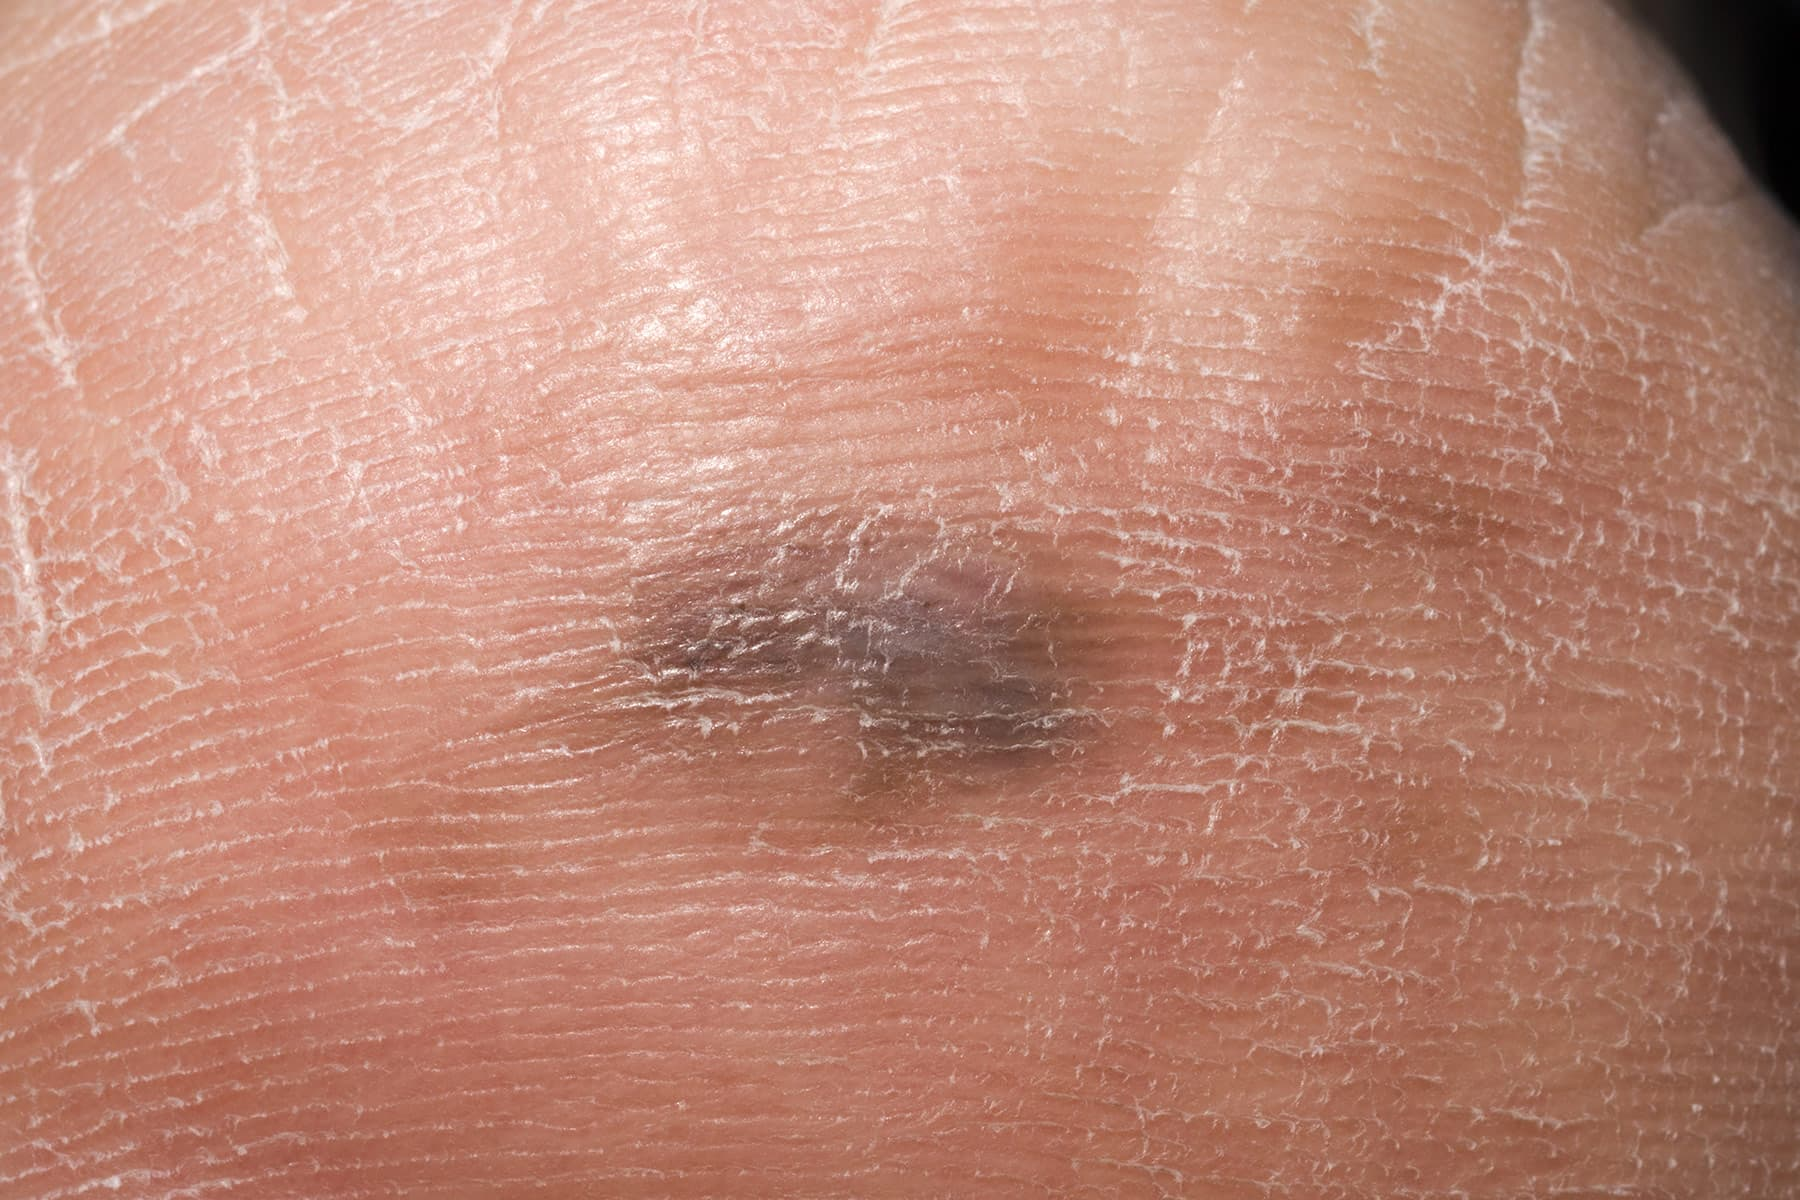 Symptoms of basal cell carcinoma